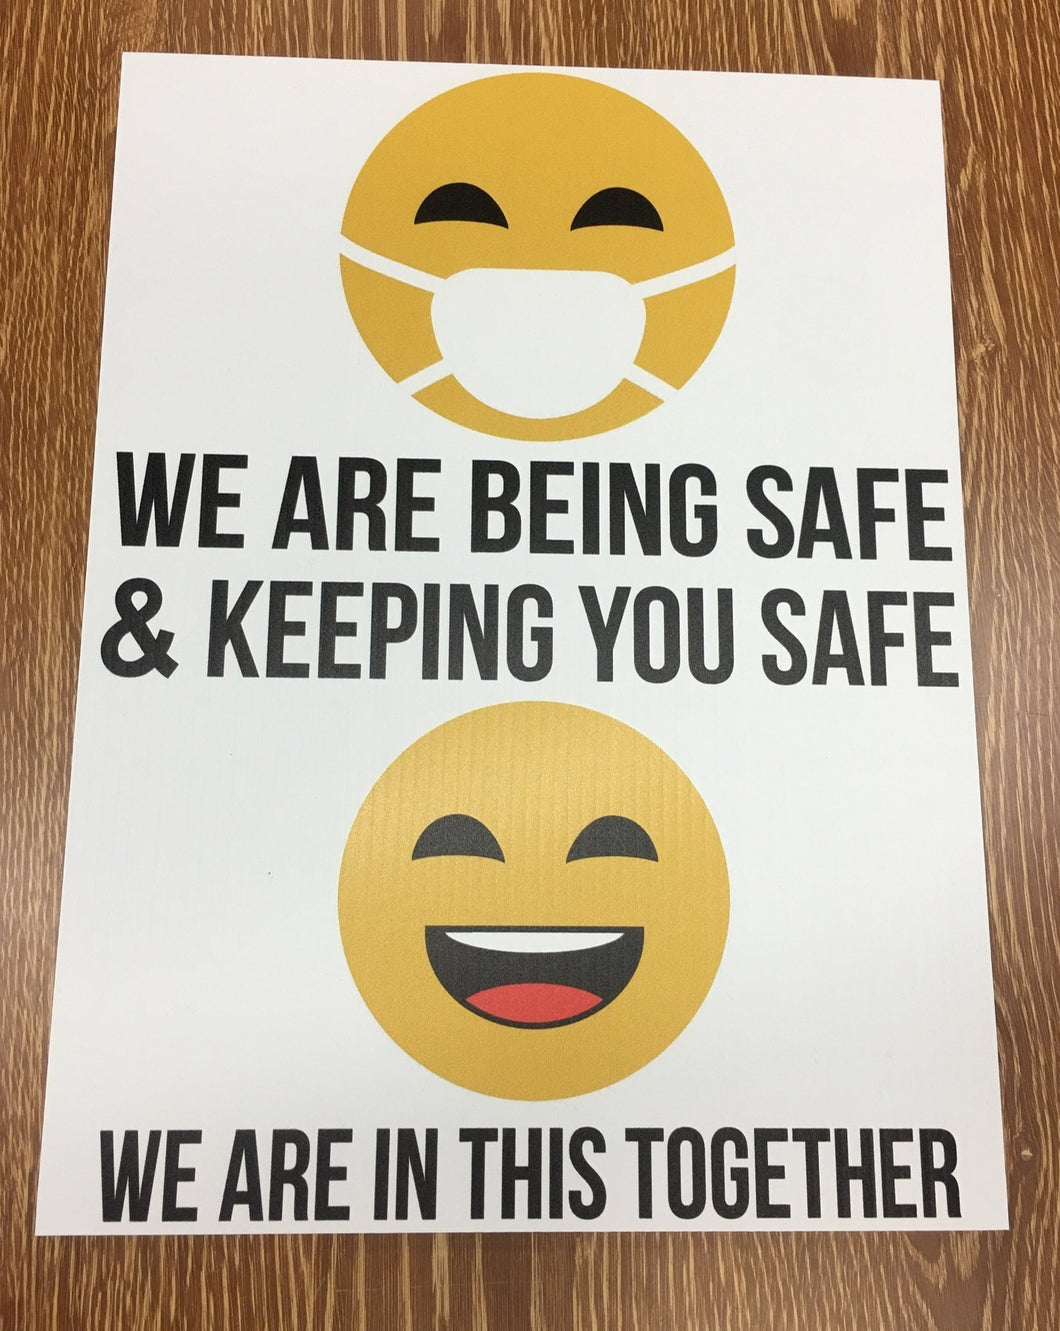 WE ARE BEING SAFE & KEEPING YOU SAFE